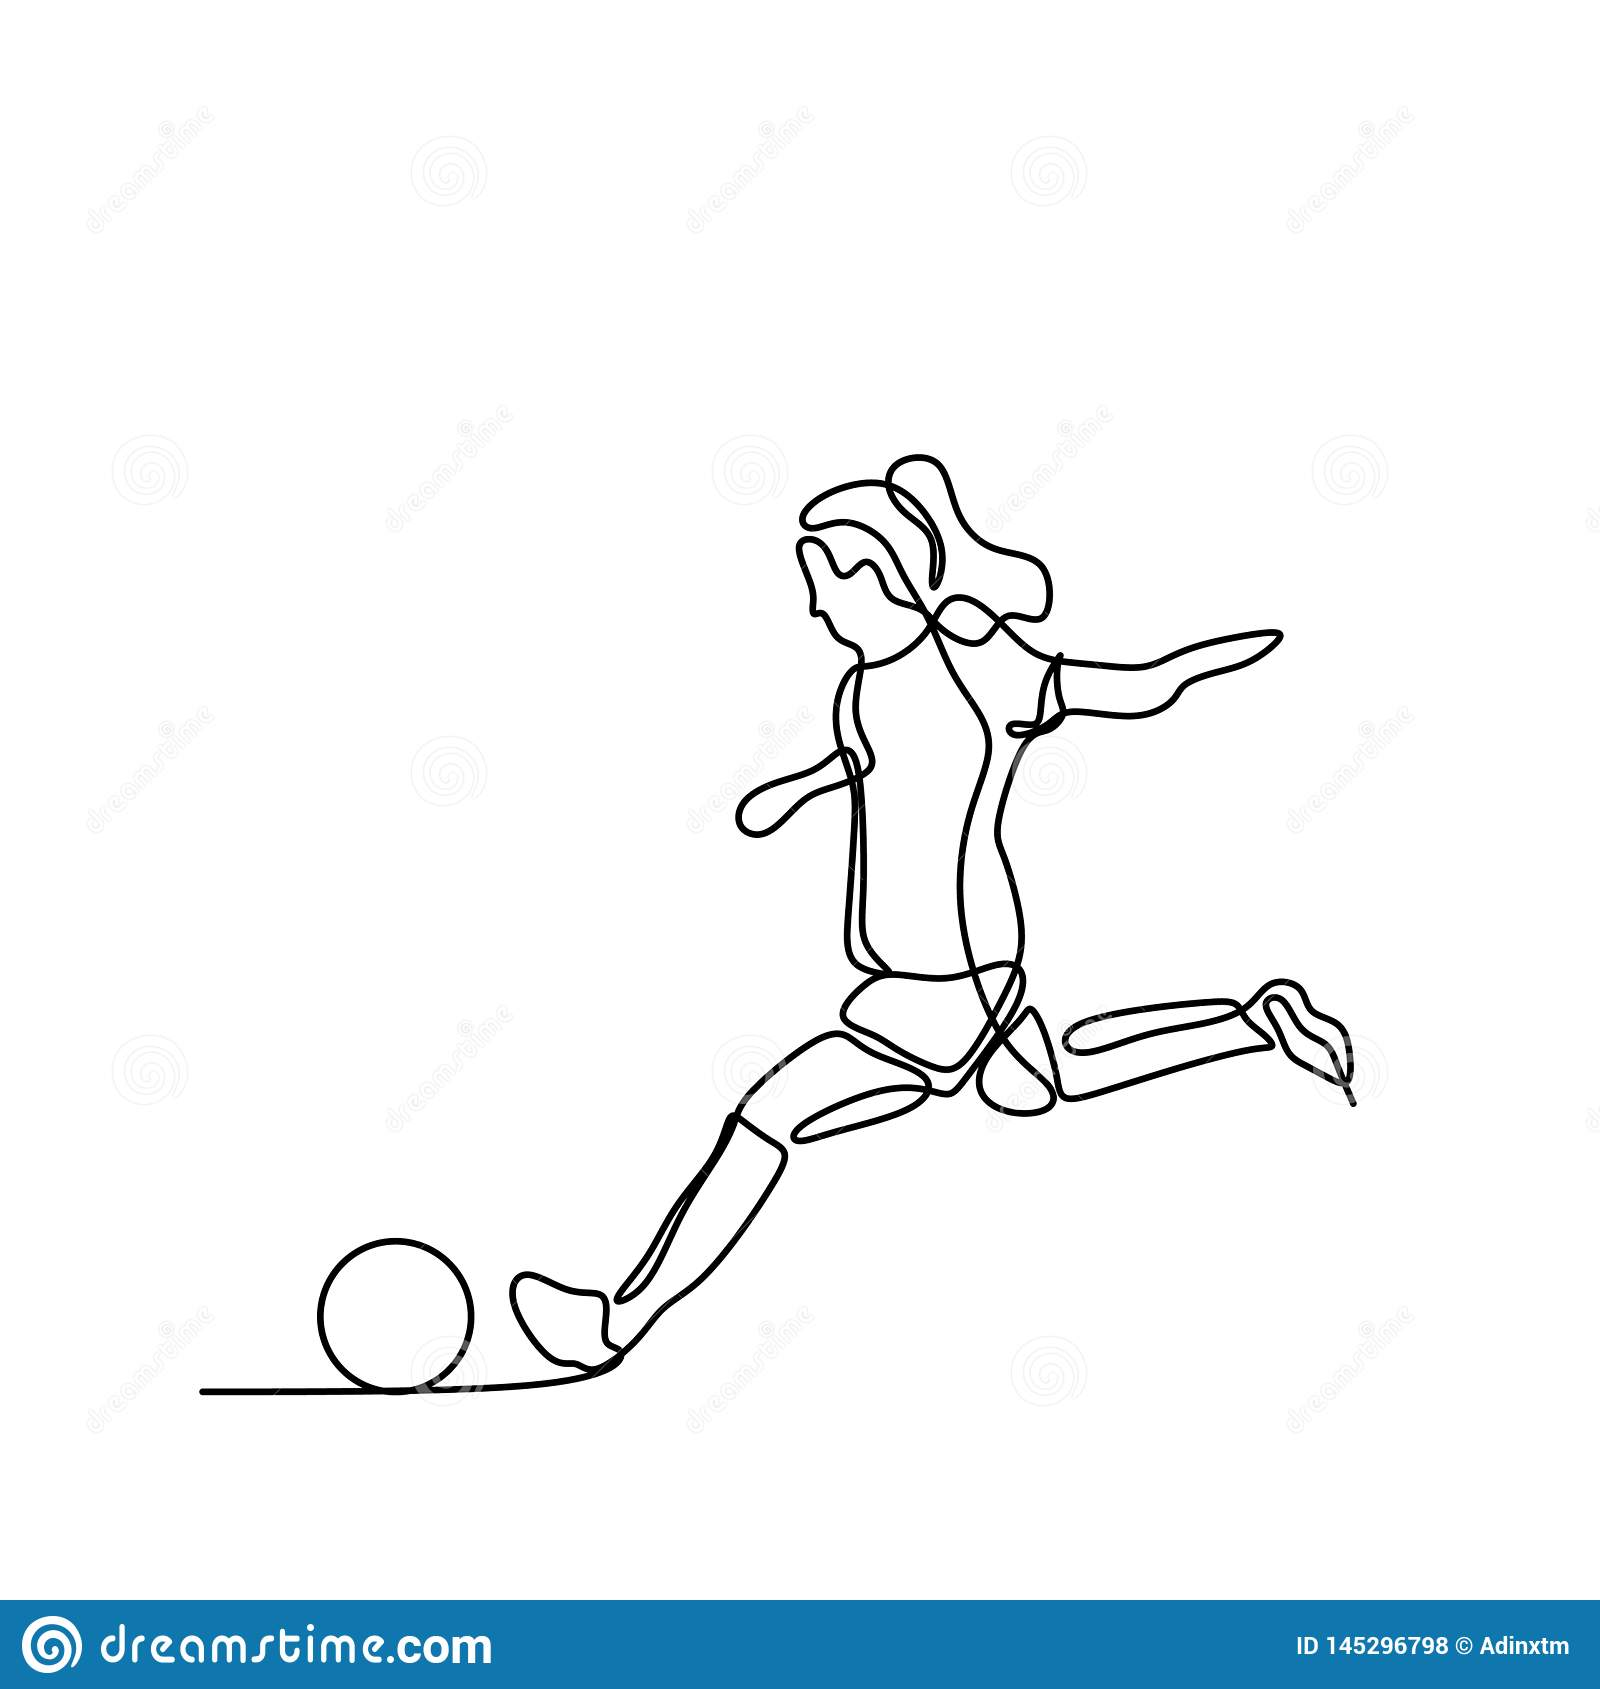 Women soccer player continuous line art drawing